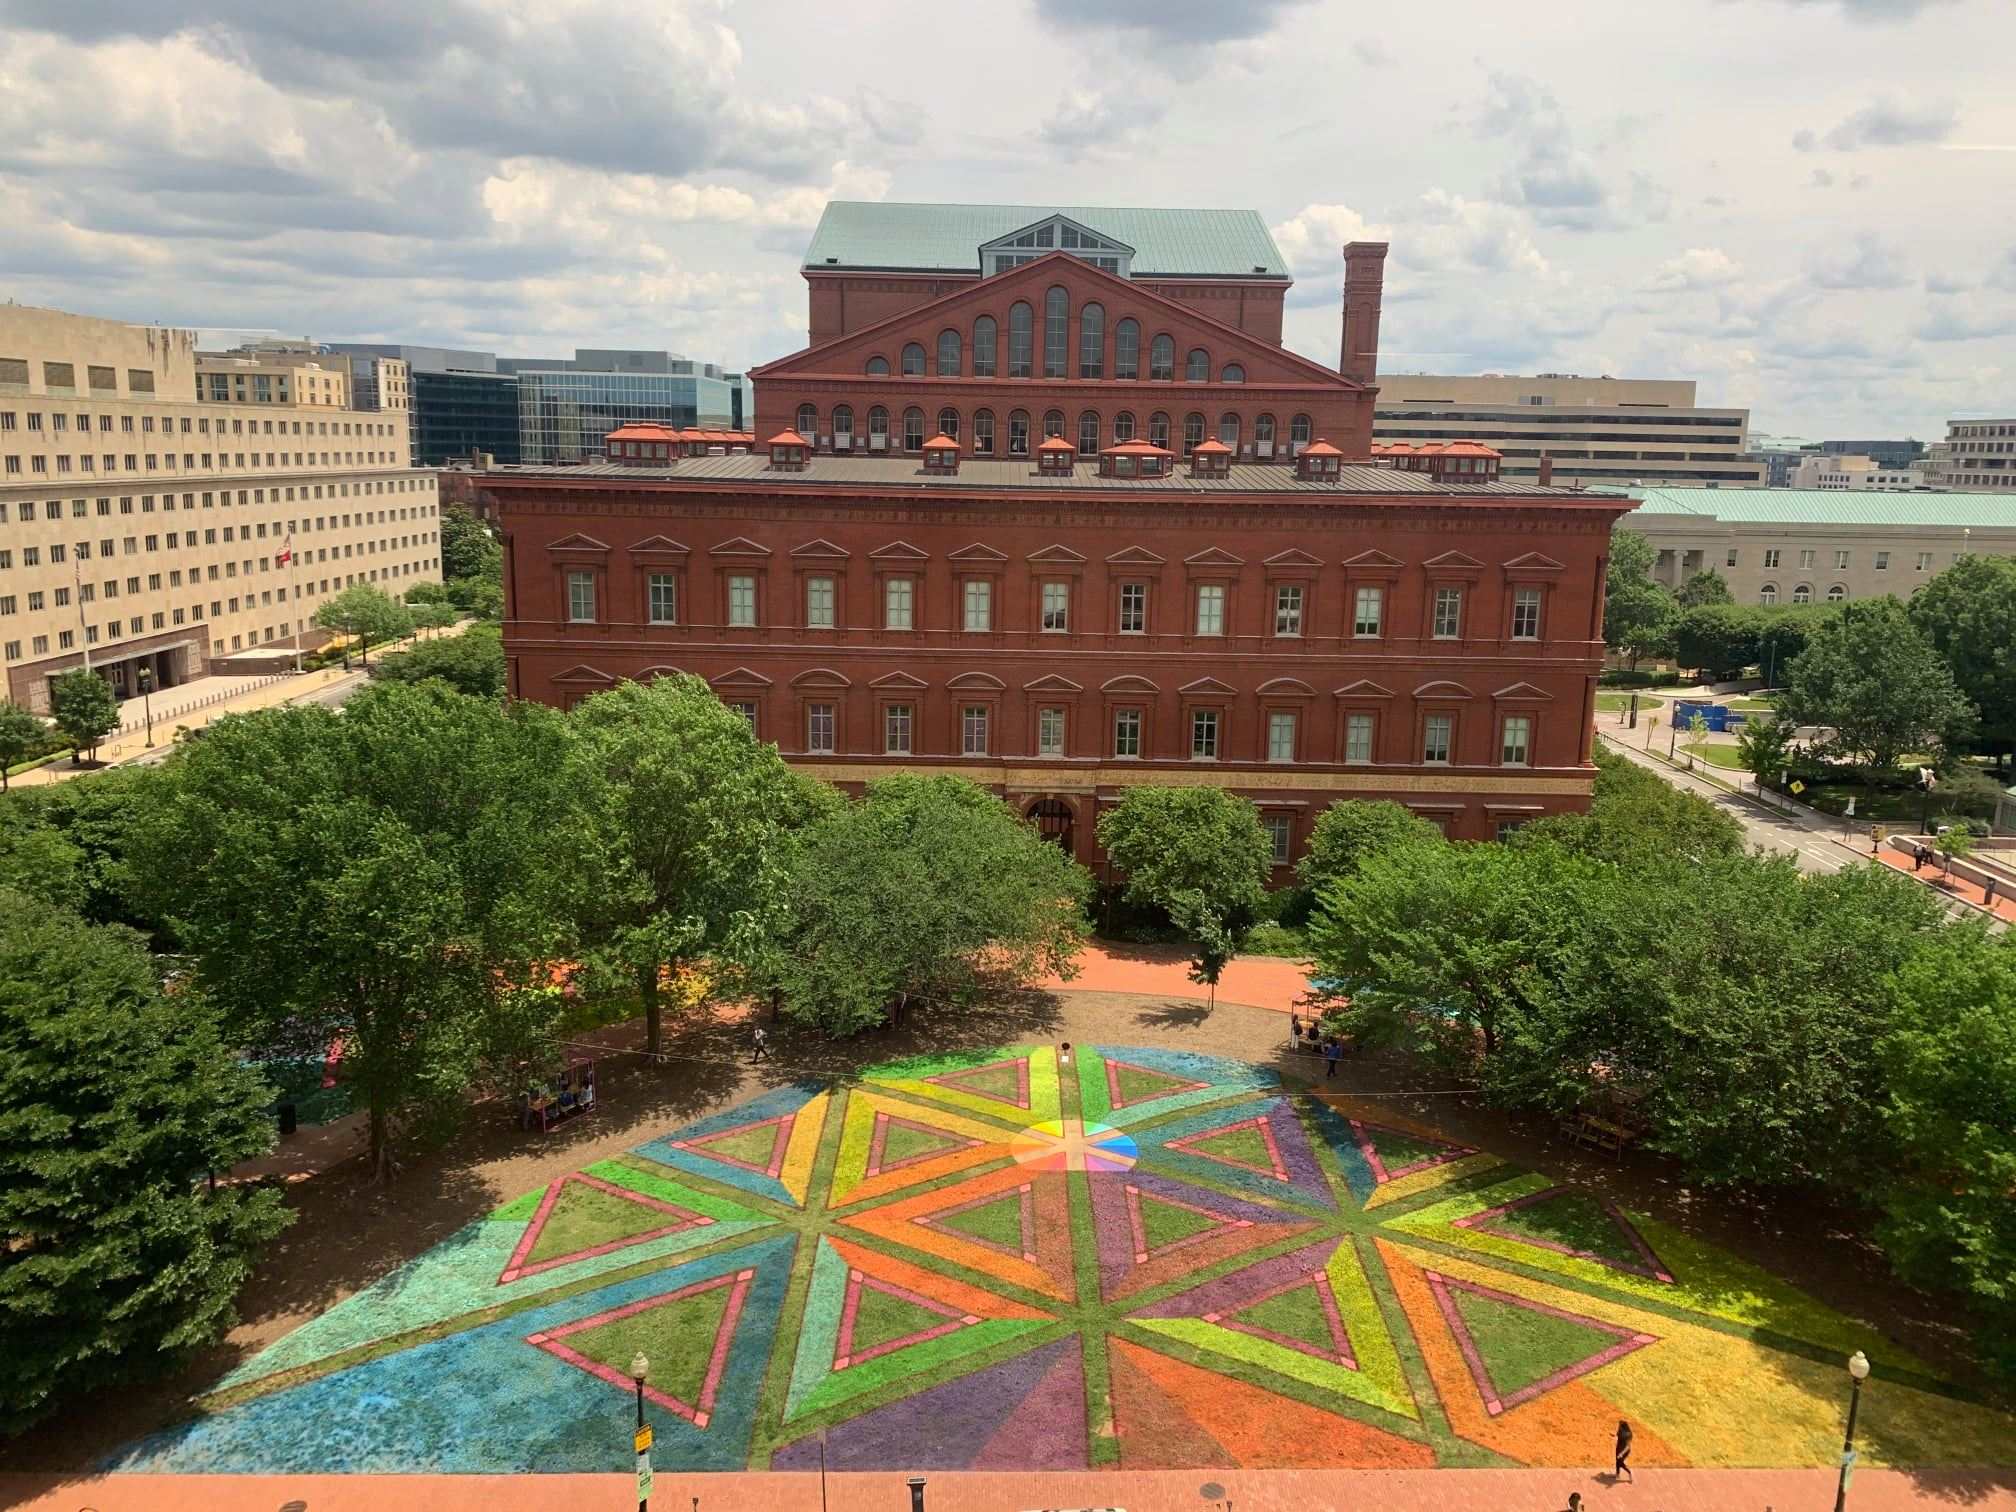 Equilateral Network on the Museum's West Lawn. Courtesy Lisa Marie Thalhammer.